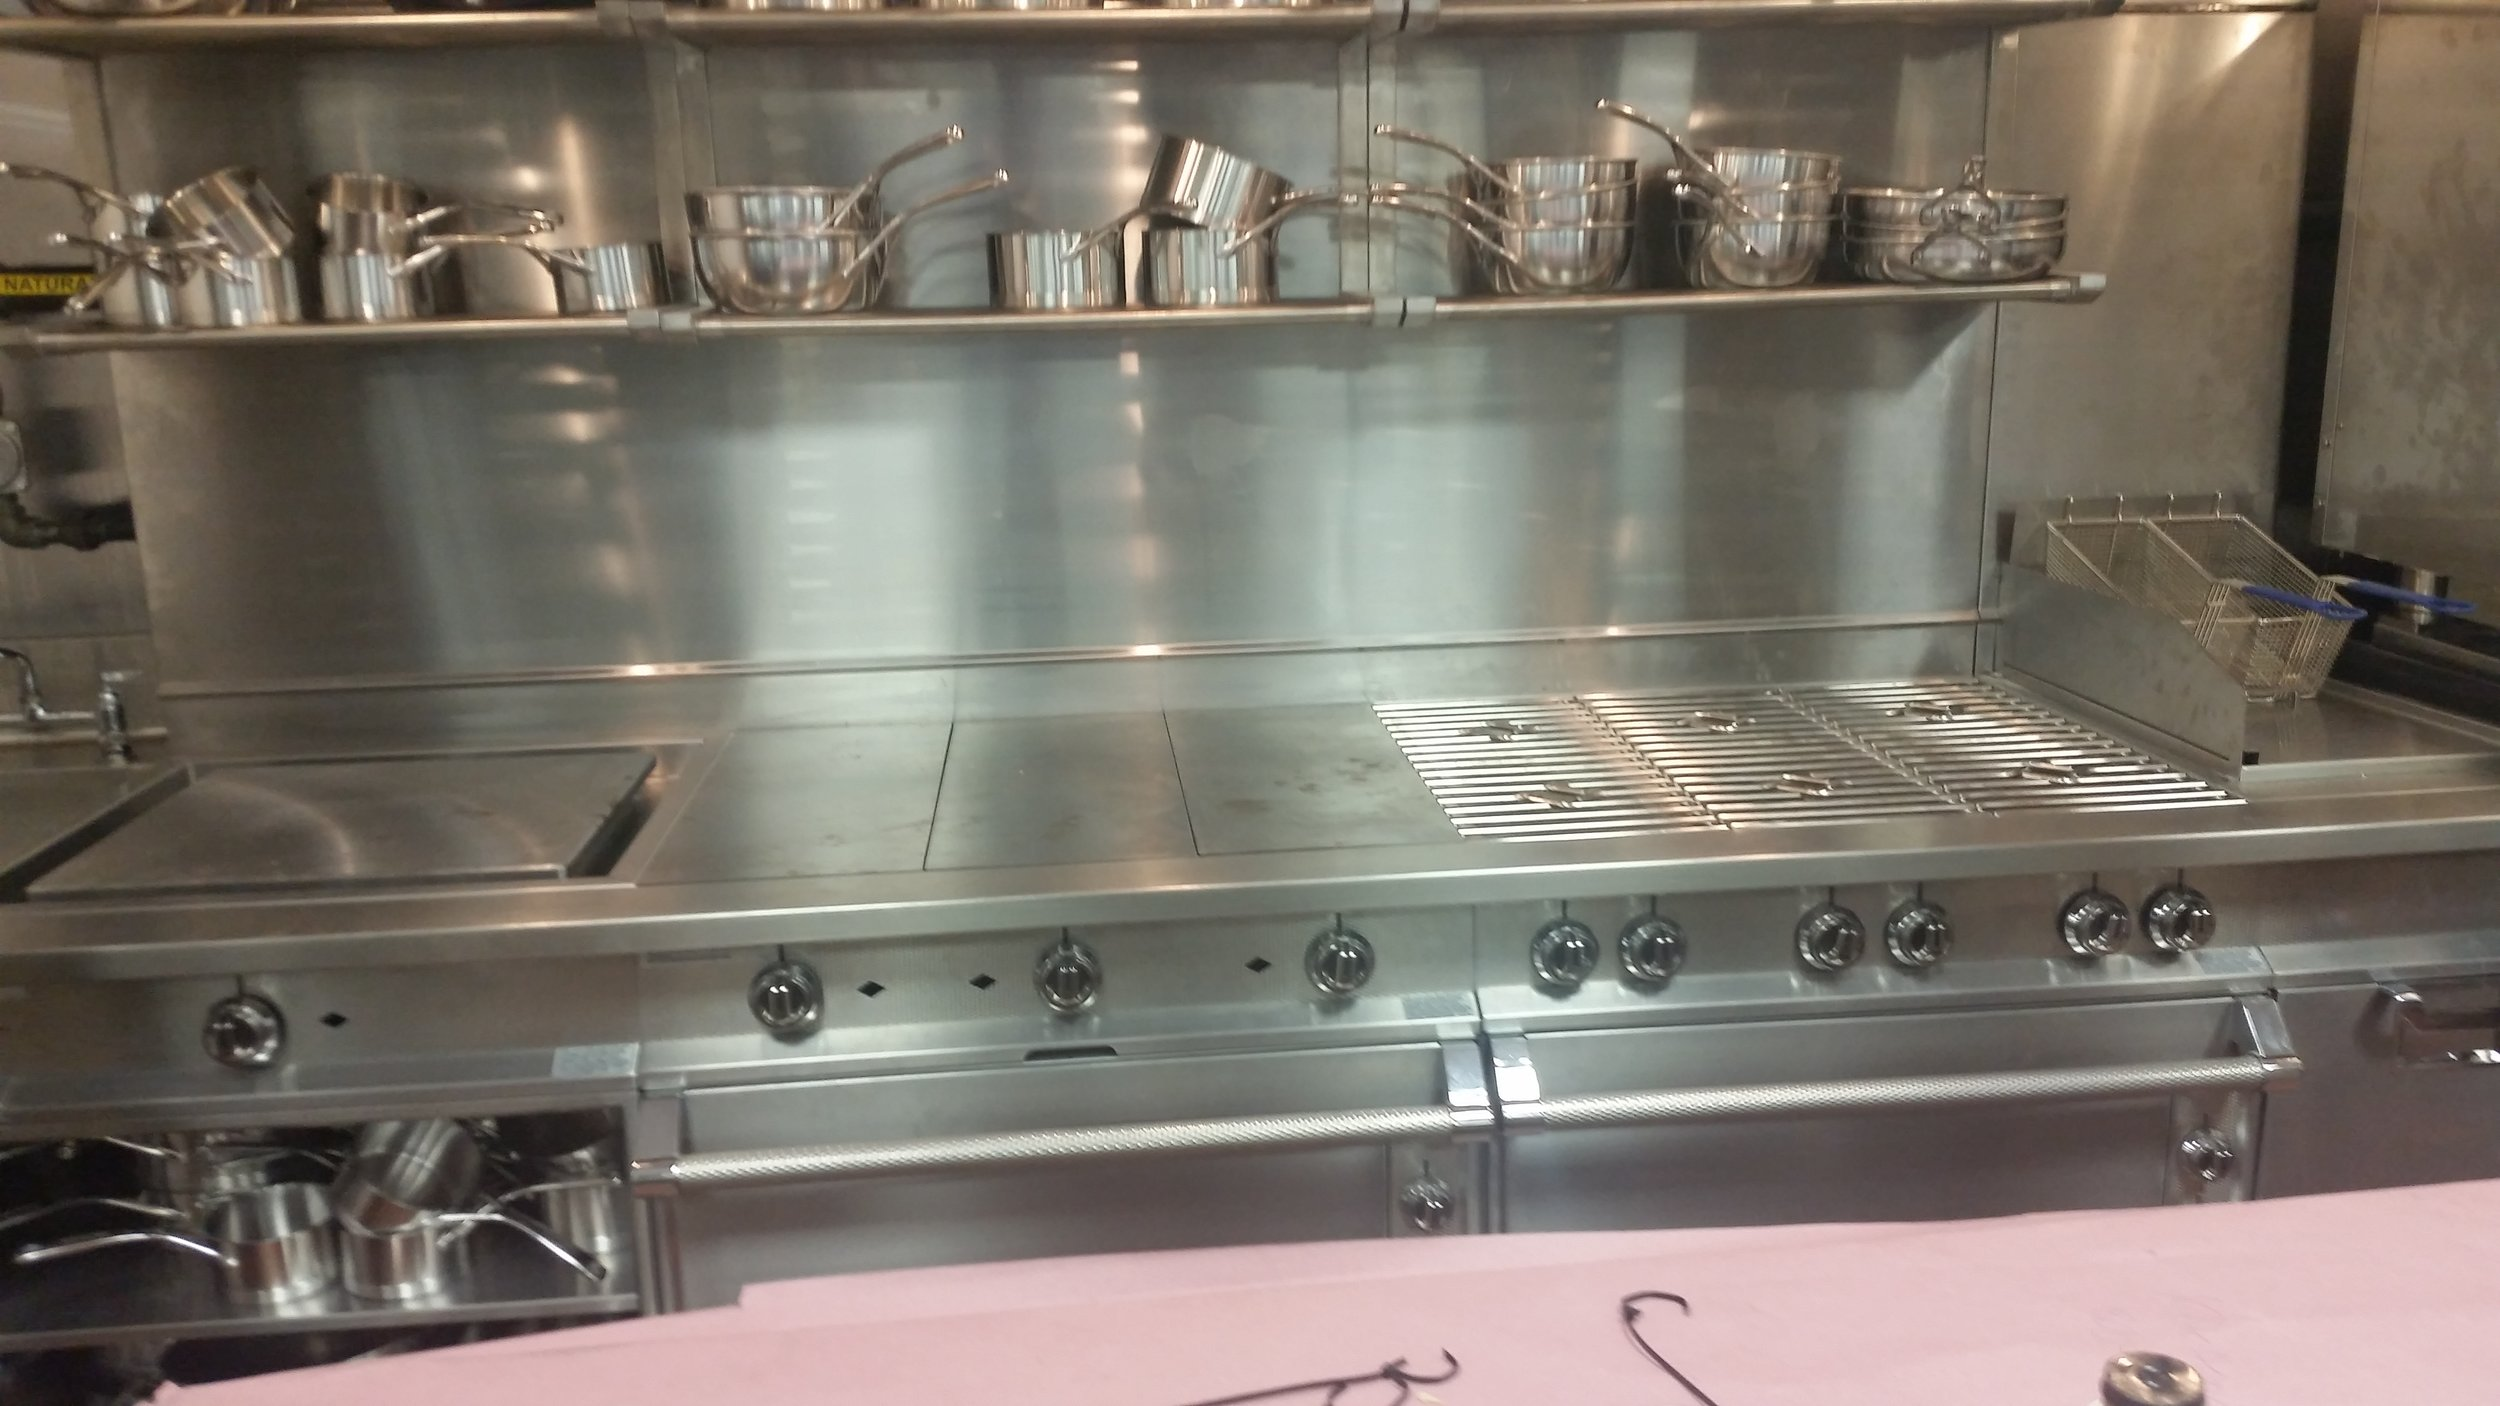 Poa Walla New York City  For some great pictures of the Heston equipment at Pao Walla, click the picture above.